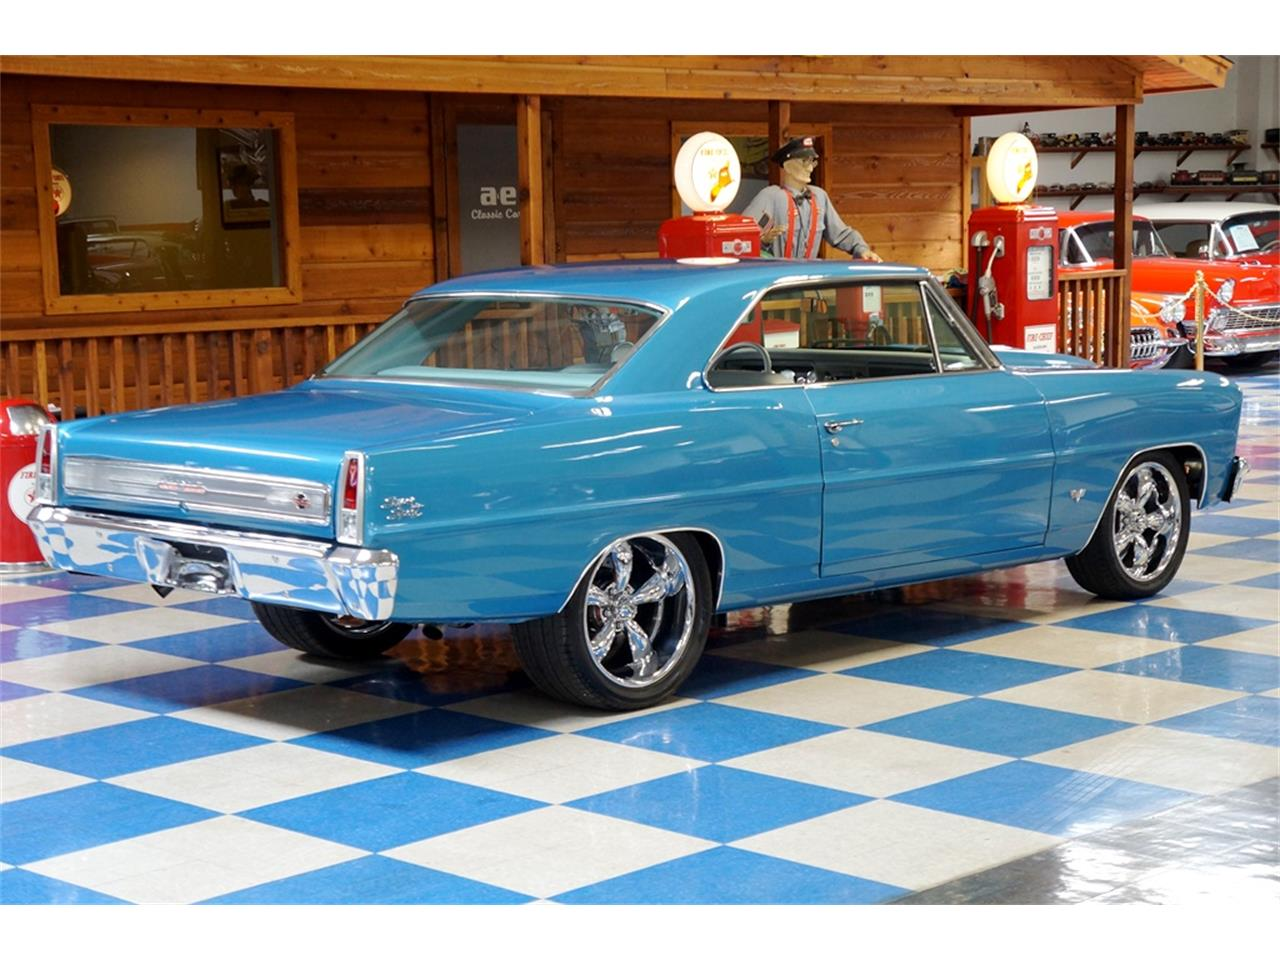 Large Picture of Classic '66 Chevrolet Nova - $64,900.00 Offered by A&E Classic Cars - PWOL